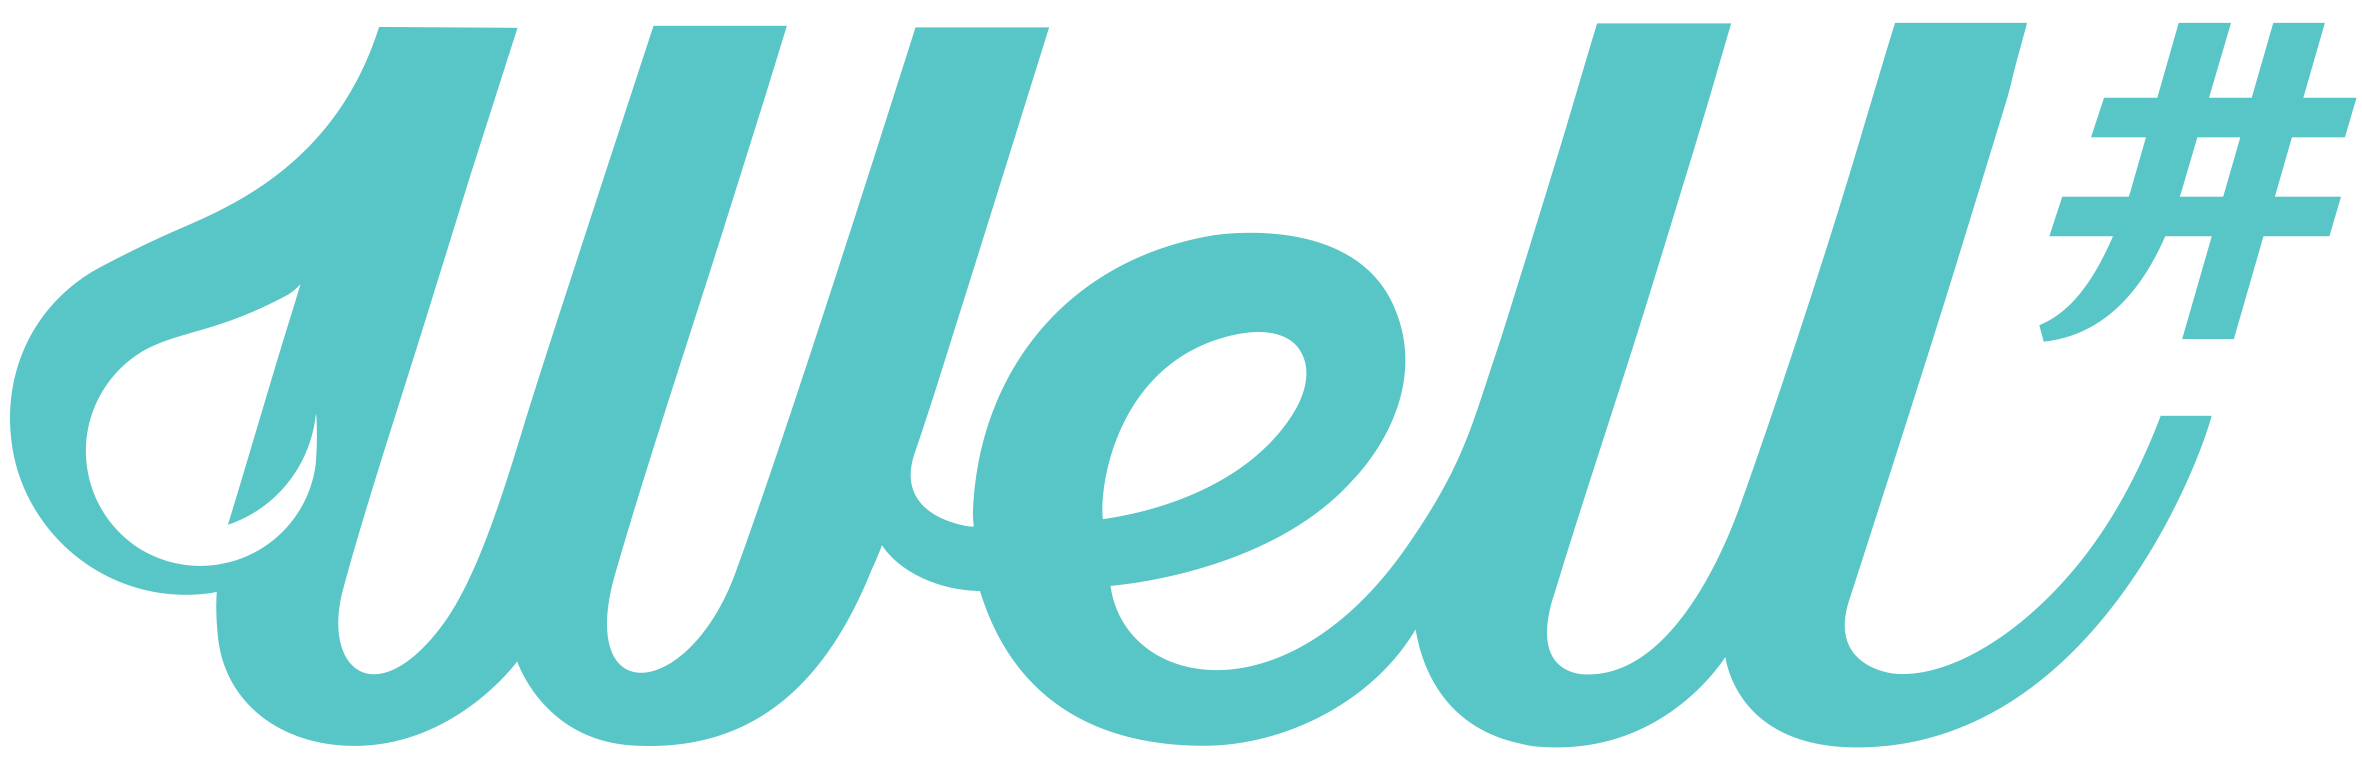 Well_logo_turquoise